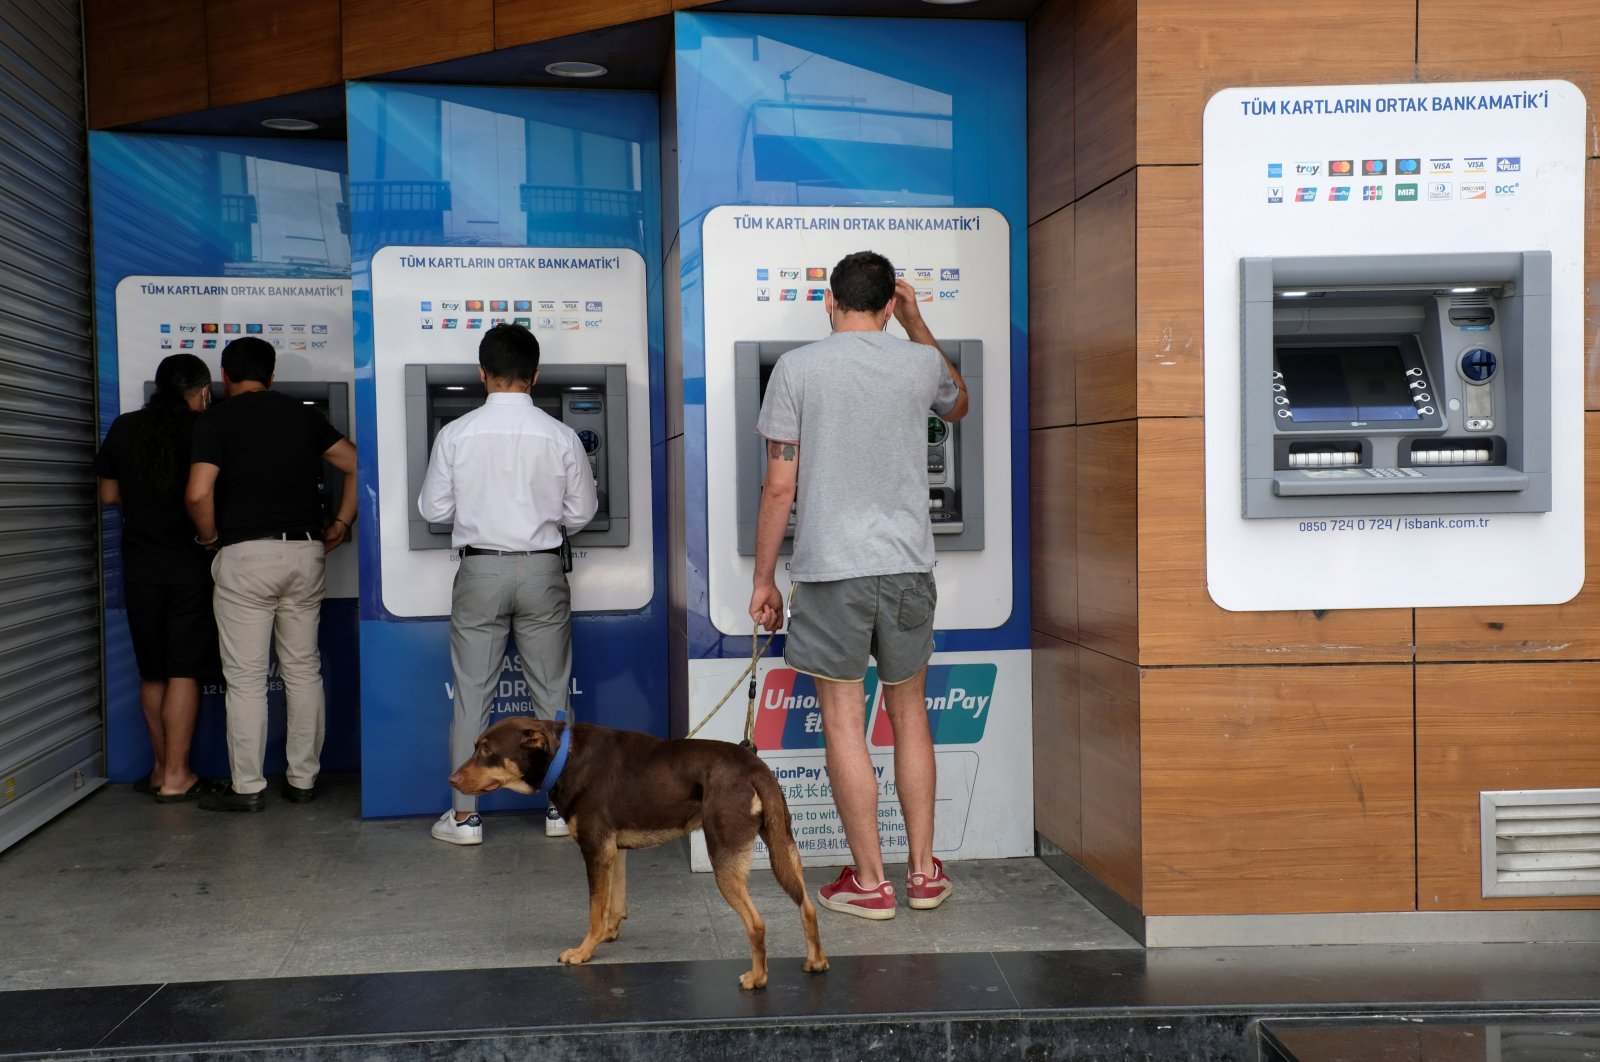 People withdraw money from ATM machines at the main shopping and pedestrian street of Istiklal Avenue in central Istanbul, Turkey, July 25, 2020. (Reuters Photo)